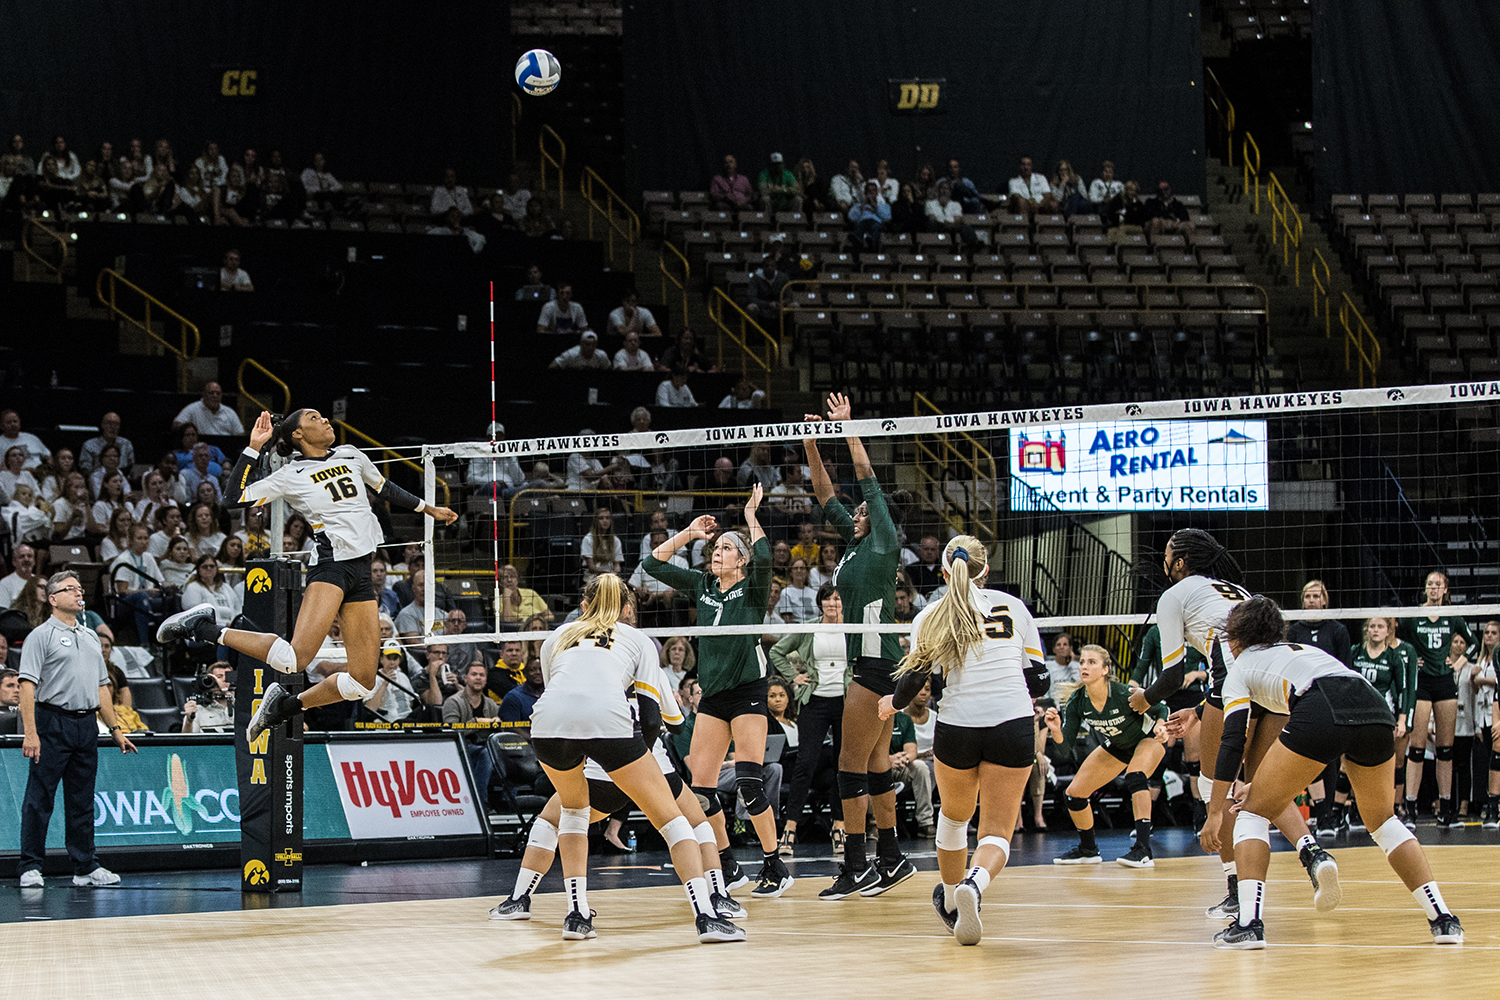 Iowa%27s+Taylor+Louis+goes+for+a+kill+during+a+volleyball+match+between+Iowa+and+Michigan+State+on+Friday%2C+Sept.+21%2C+2018.+The+Hawkeyes+defeated+the+Spartans%2C+3+sets+to+0.